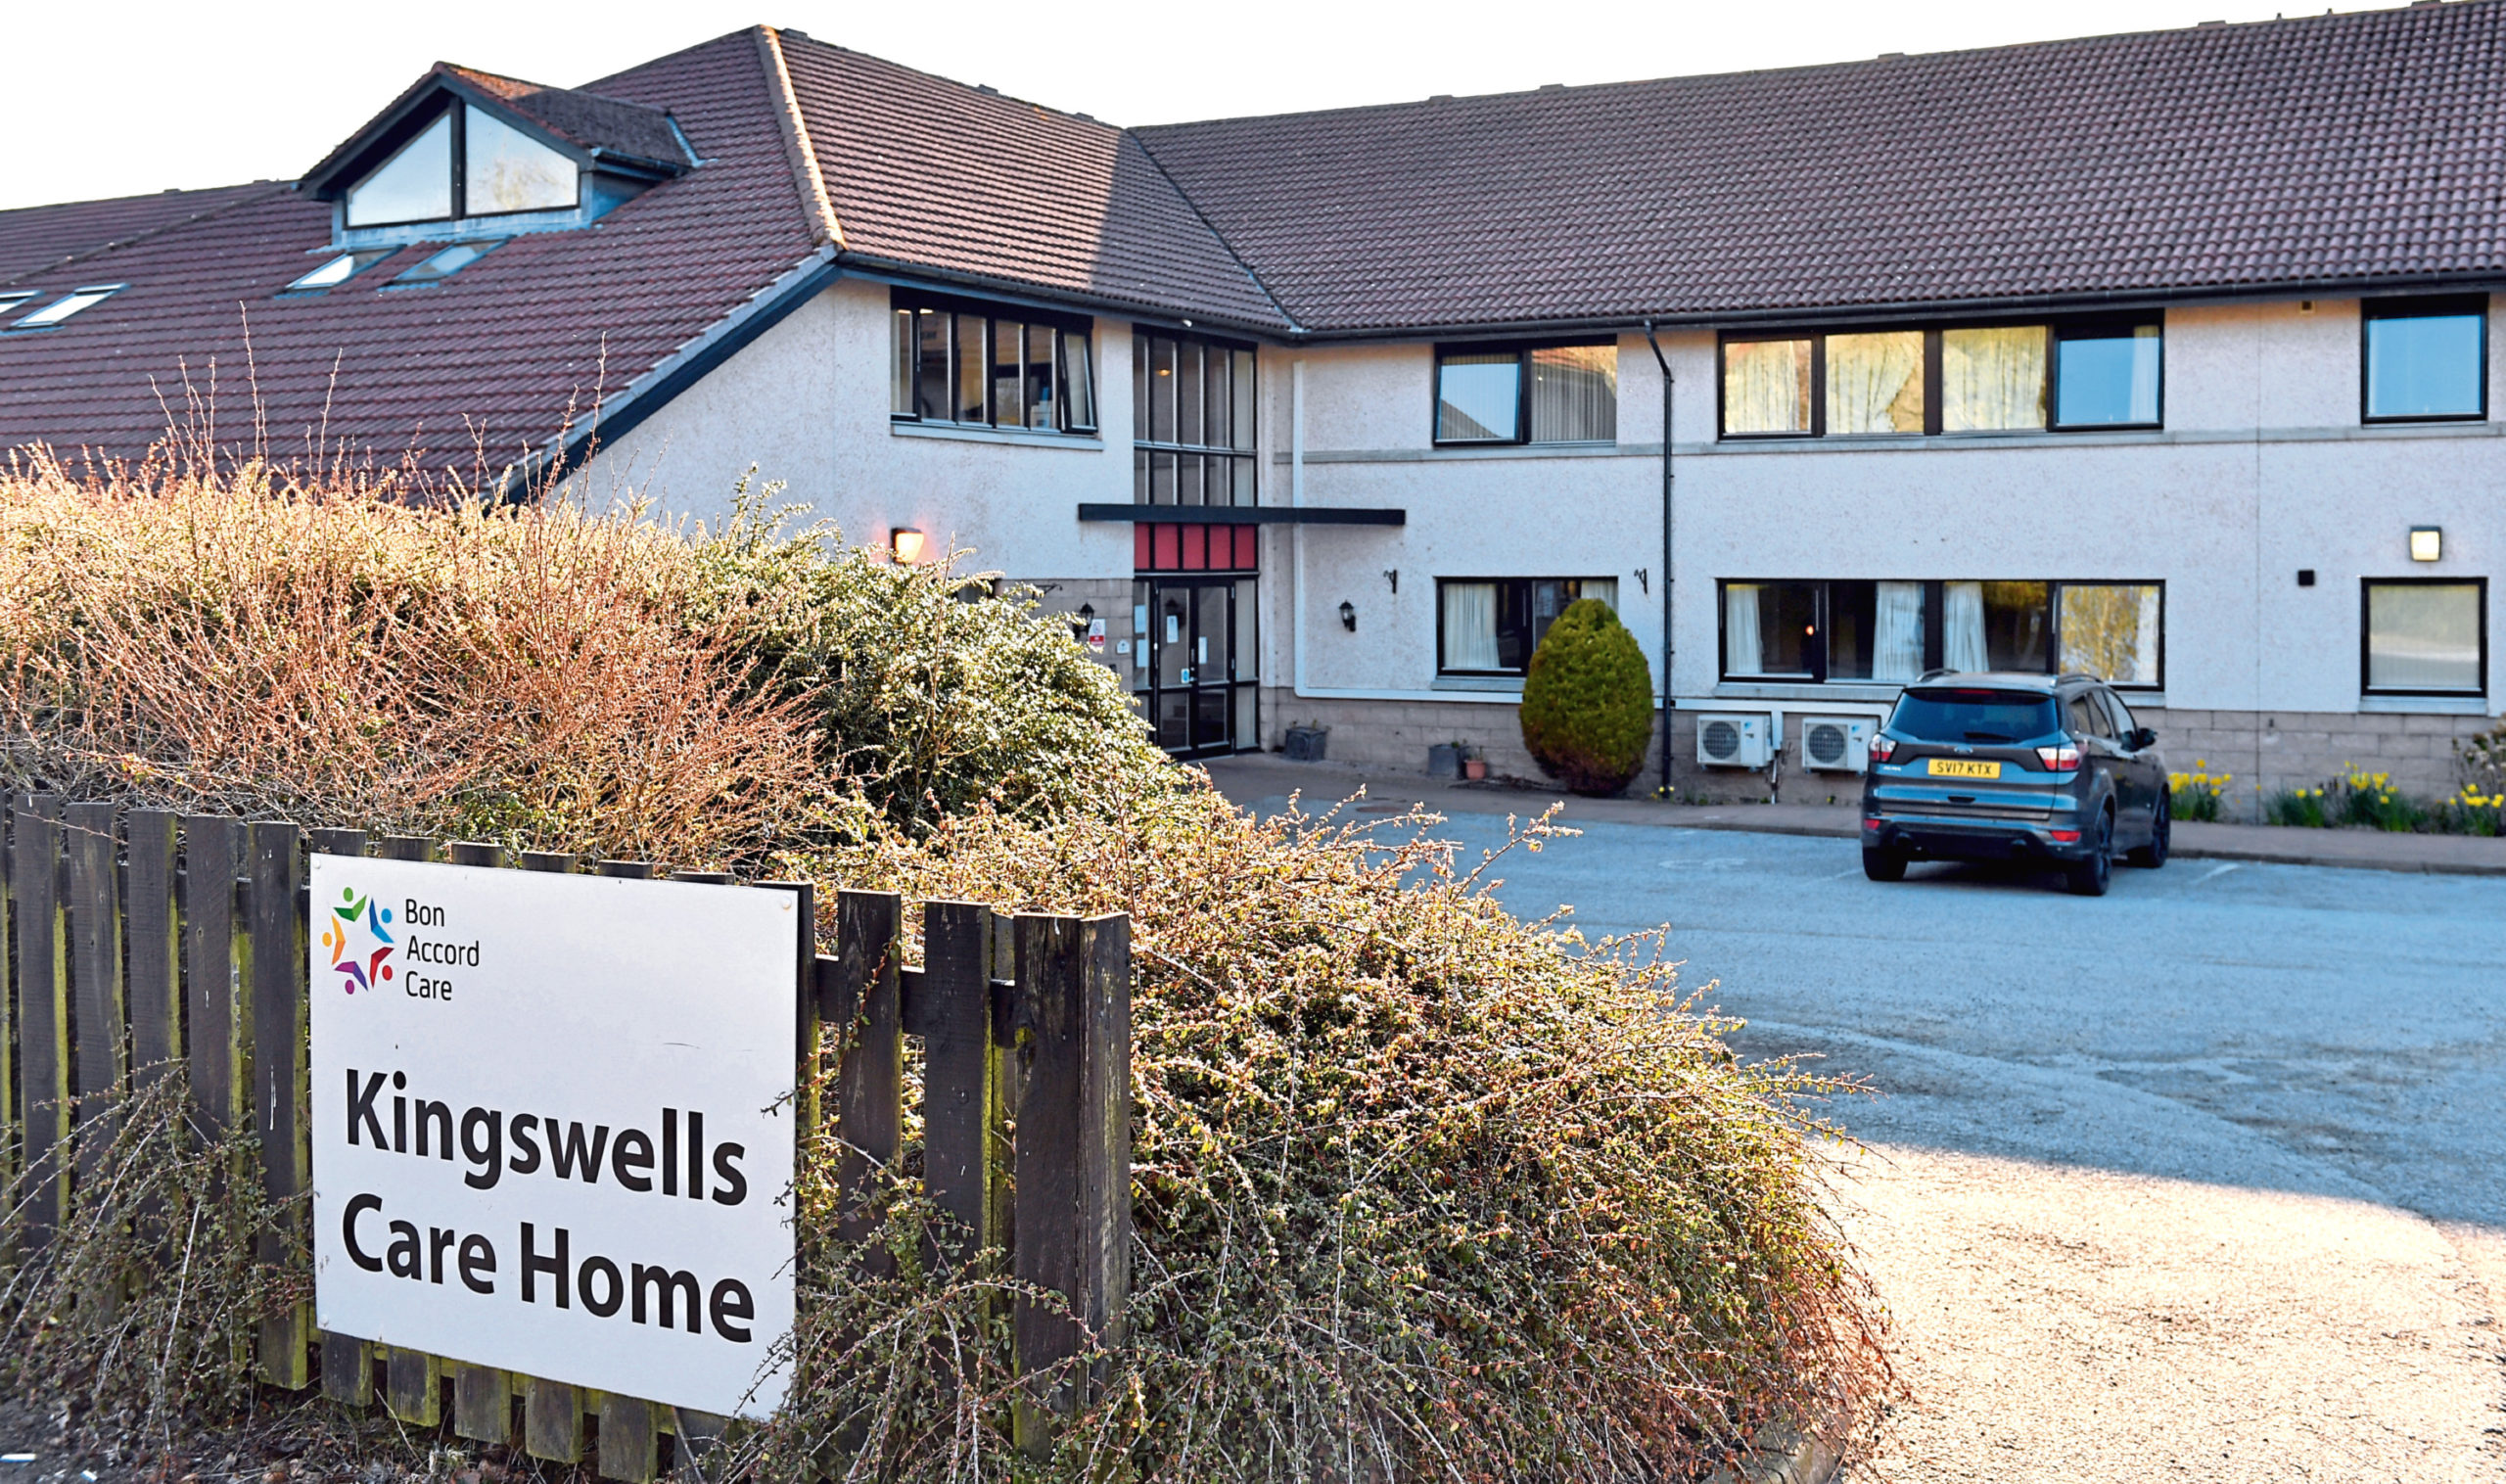 A Just Giving page has raised over £2000 for care workers at Kingswell Care Home.